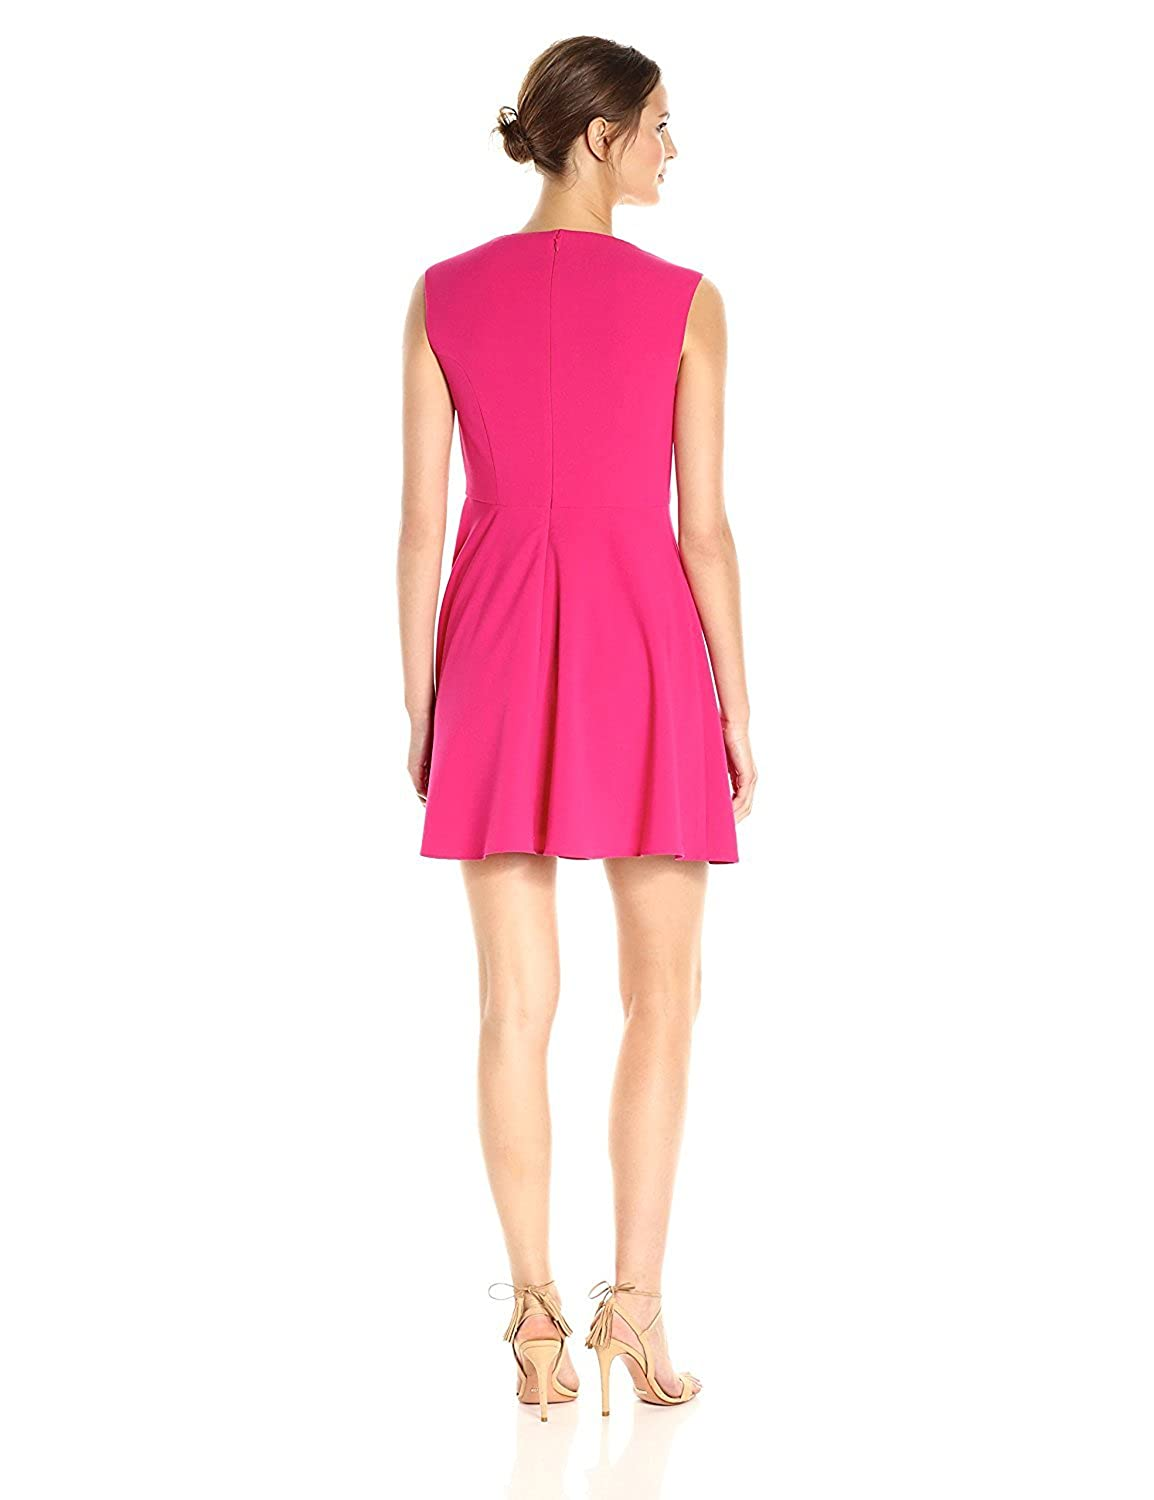 French Connection Womens Whisper Light Fit and Flare Dress